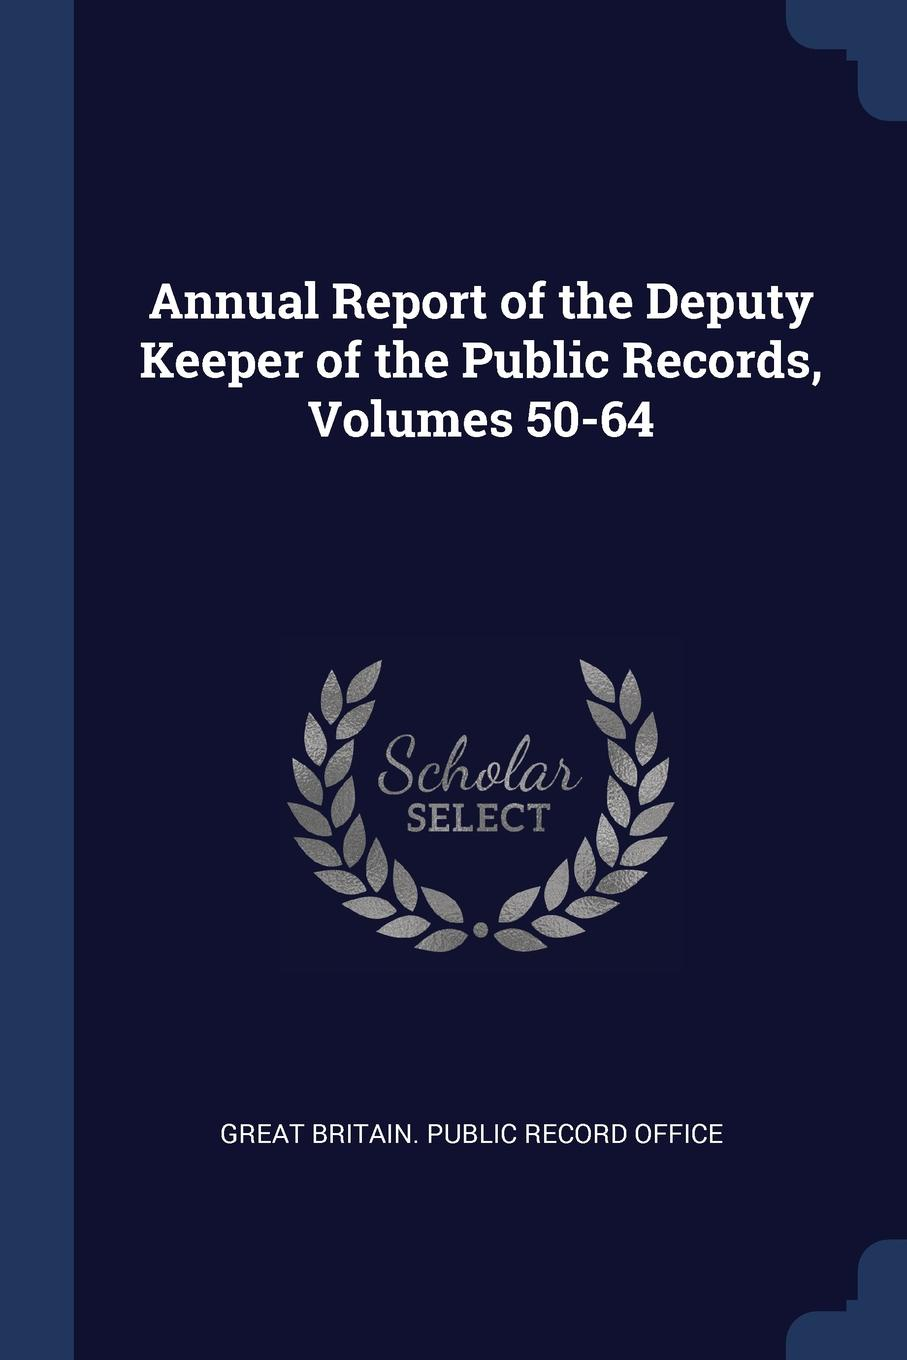 Annual Report of the Deputy Keeper of the Public Records, Volumes 50-64.